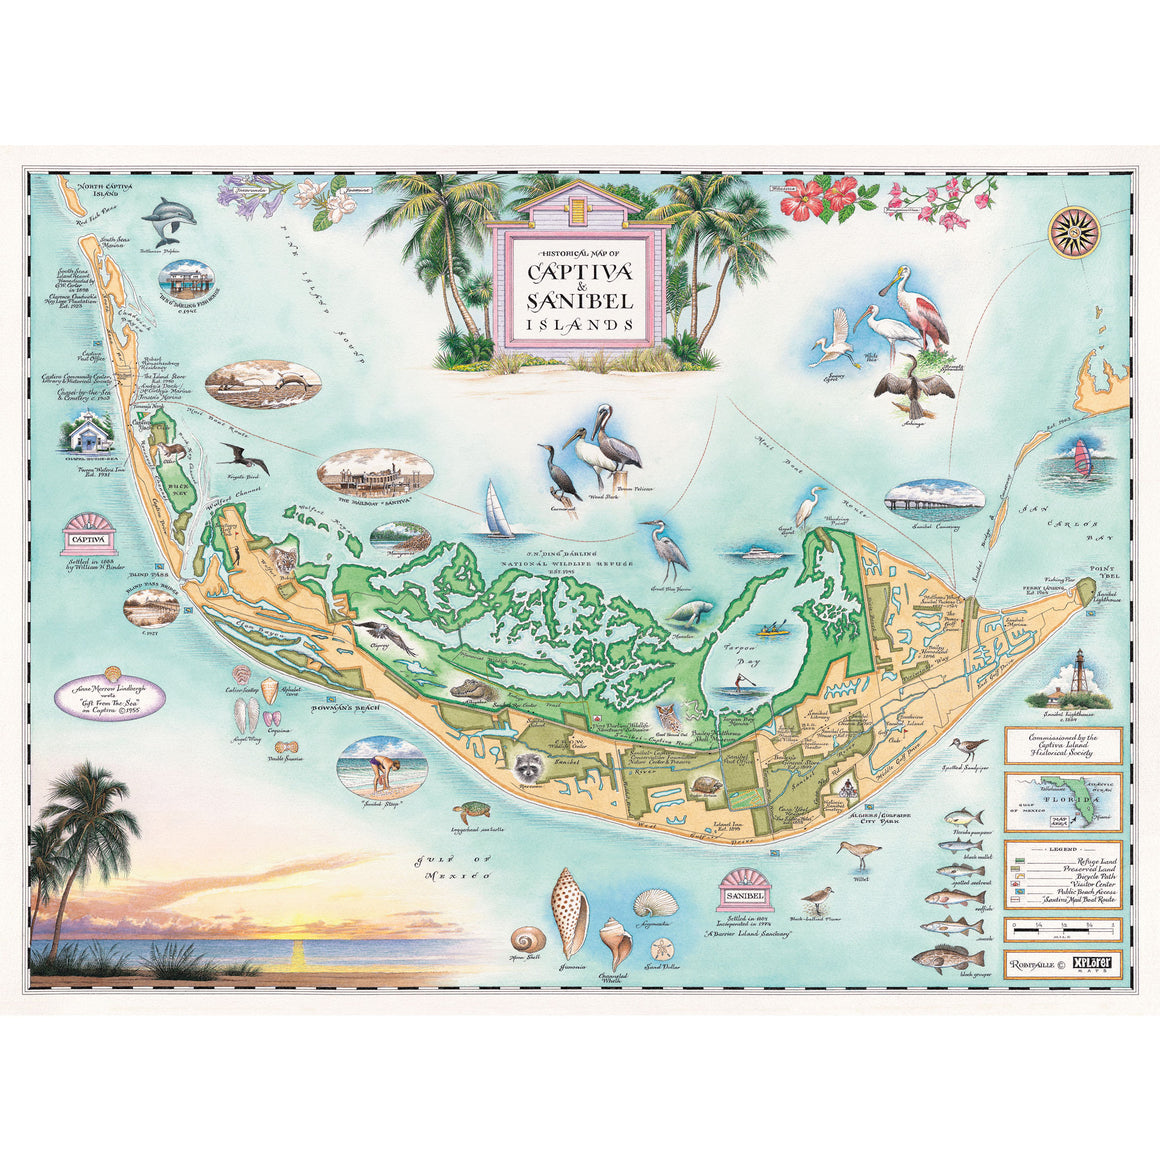 Sanibel Captiva Islands map